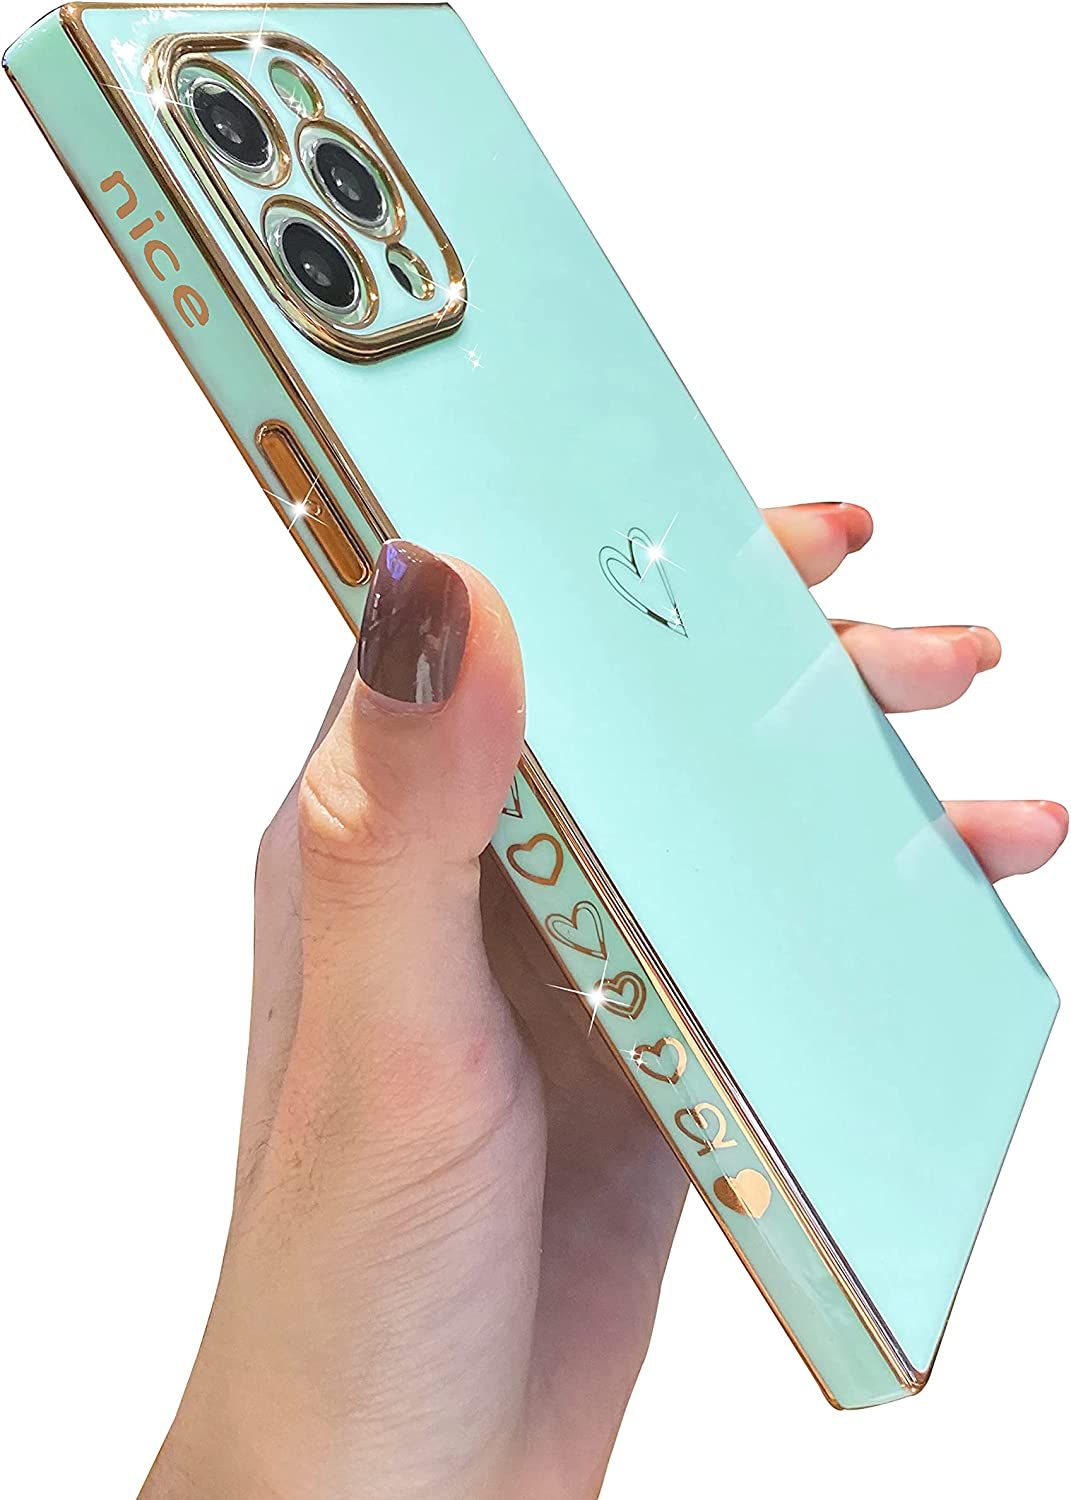 iPhone 11 Pro Max Case Square Edge, Tzomsze Cute Luxury Gold Plating Edge Bumper Case, Full Camera Lens Protection & Shockproof Reinforced Corners Cover Case [6.5 inches] -Green